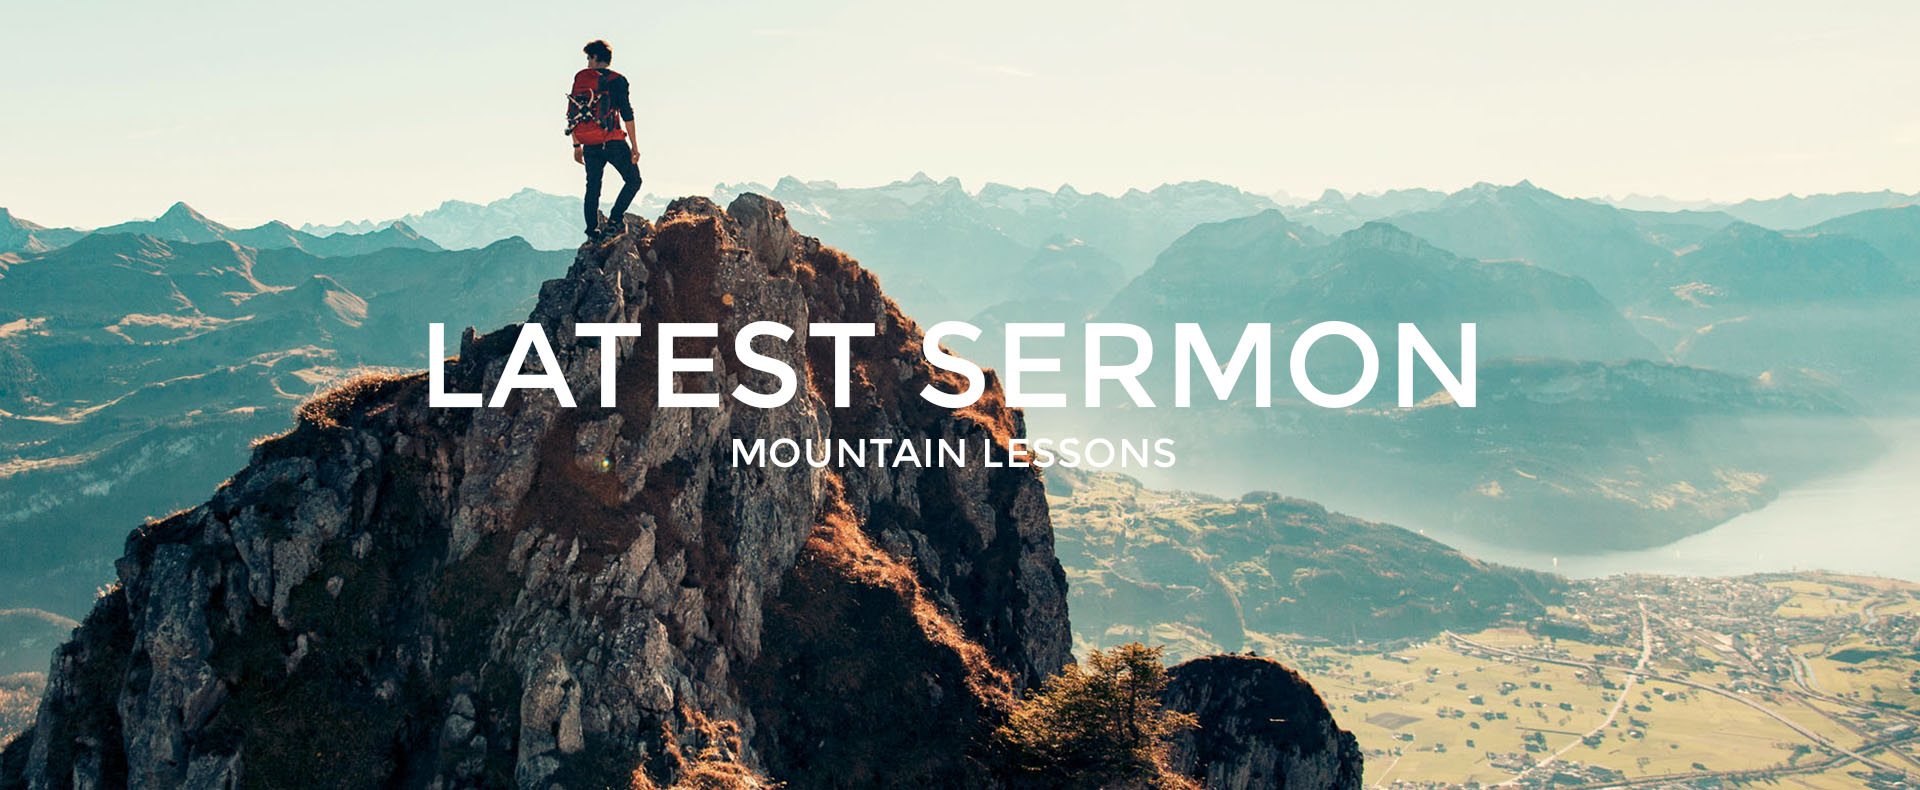 Mountain Lessons - Sermon Series by Mark Thornett